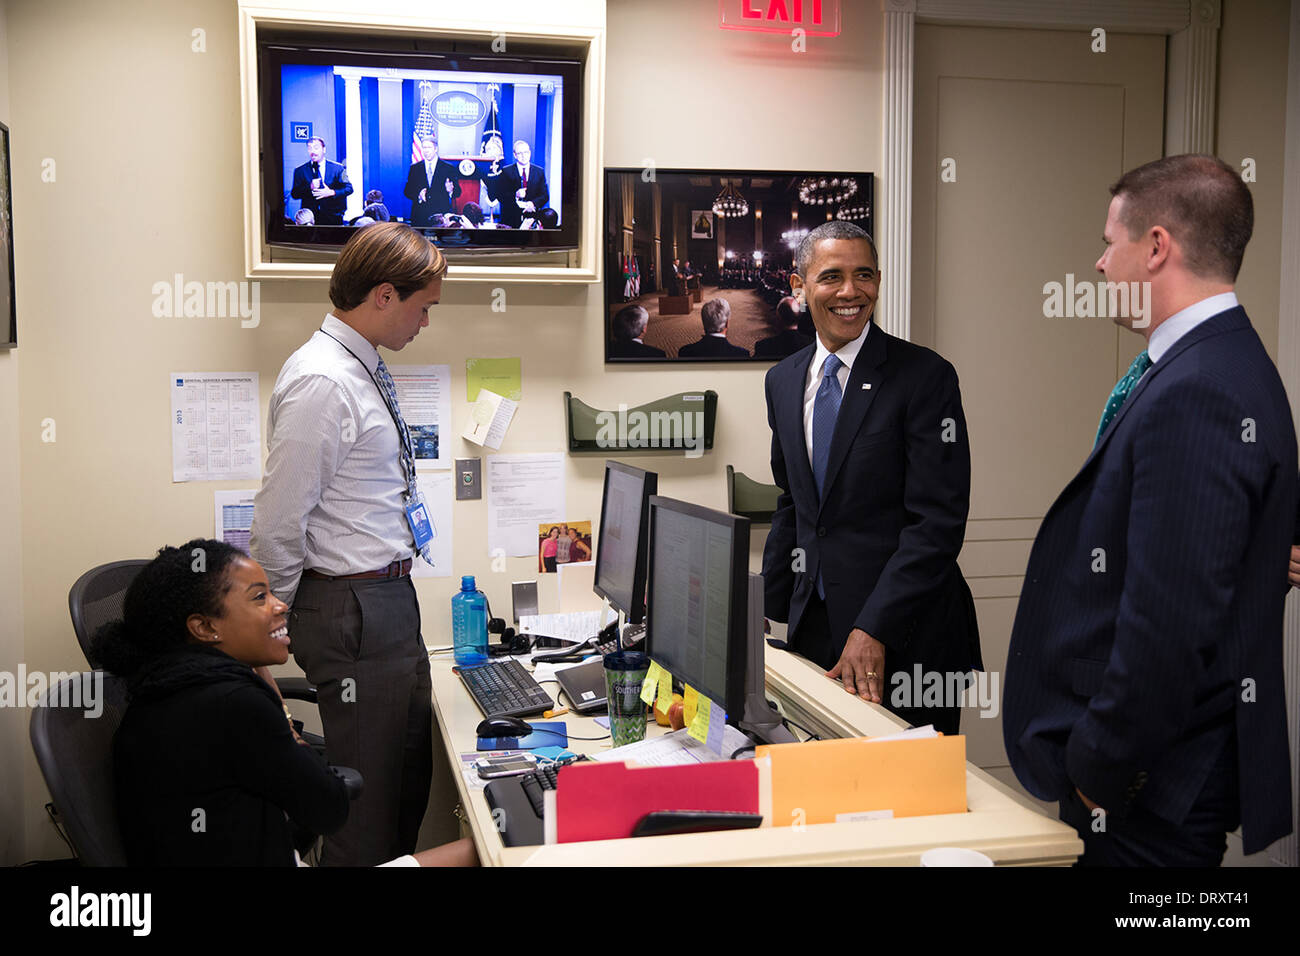 US President Barack Obama talks with Senior Advisor Dan Pfeiffer, right, and Press Assistants Desiree Barnes and Peter Velz in the Lower Press Office prior to delivering a statement regarding budget negotiations in the James S. Brady Press Briefing Room of the White House September 30, 2013 in Washington, DC. - Stock Image